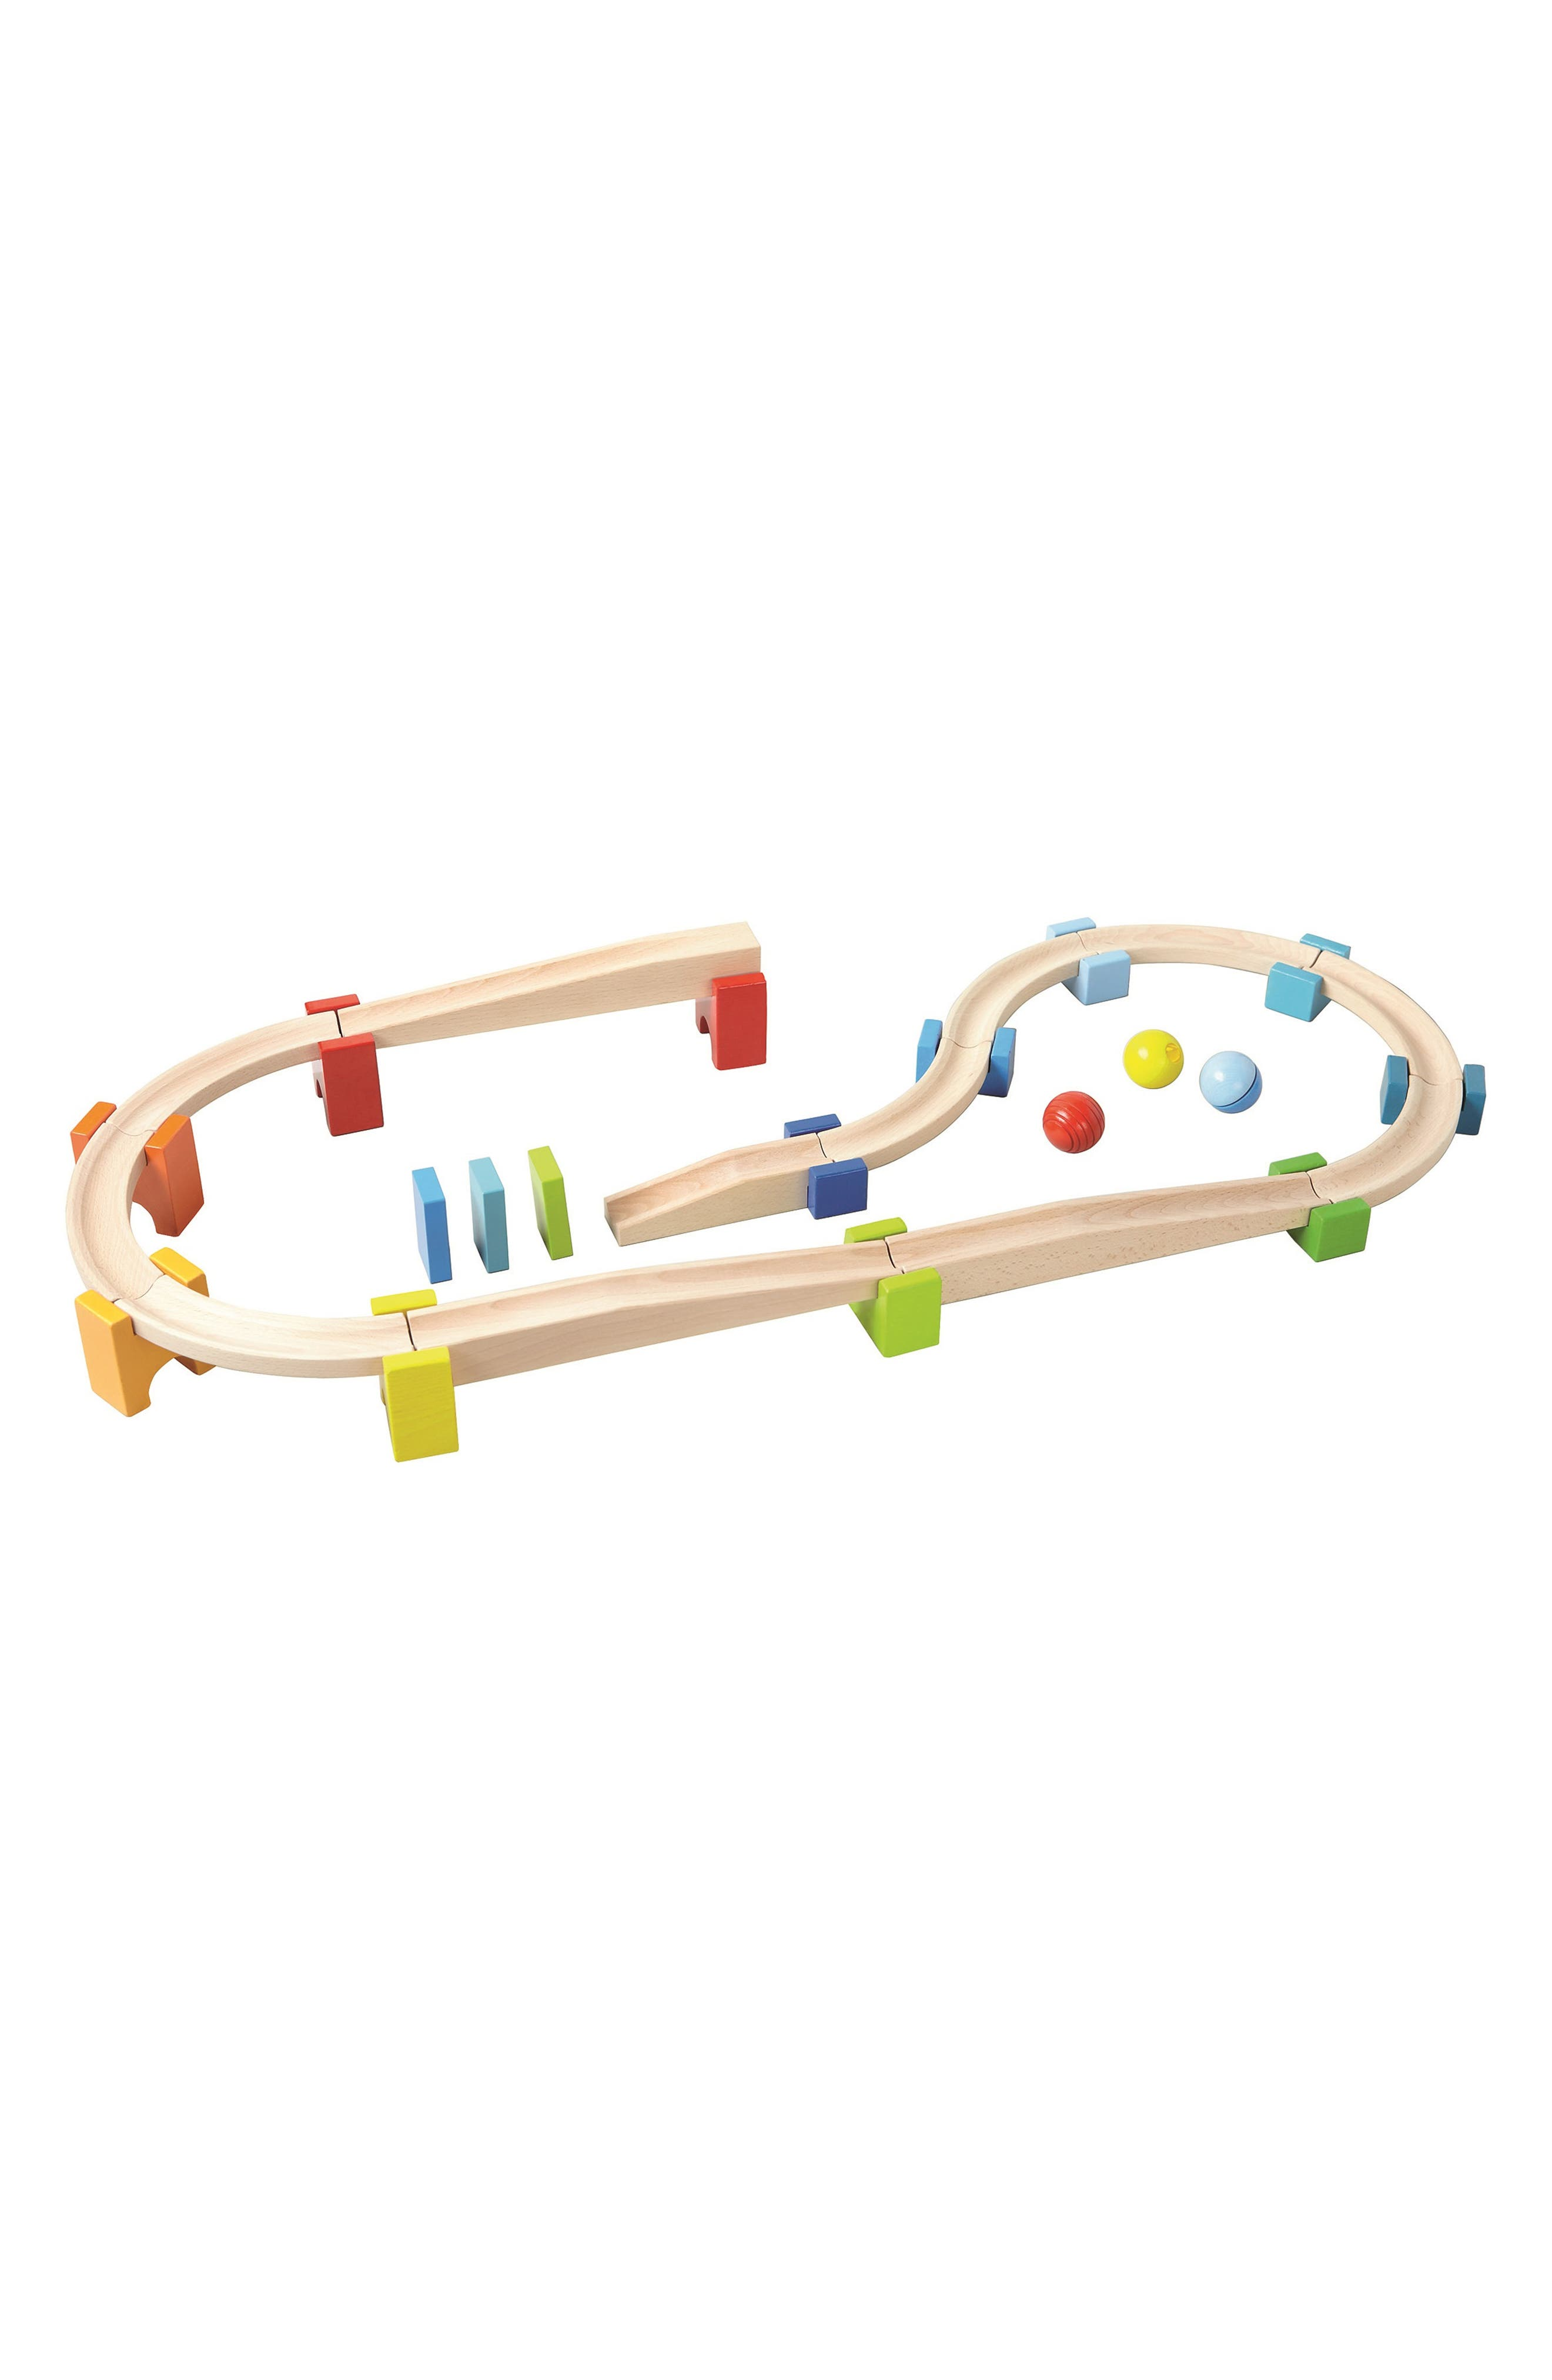 Toddler Haba My First Ball Track  30Piece Large Basic Pack Construction Set